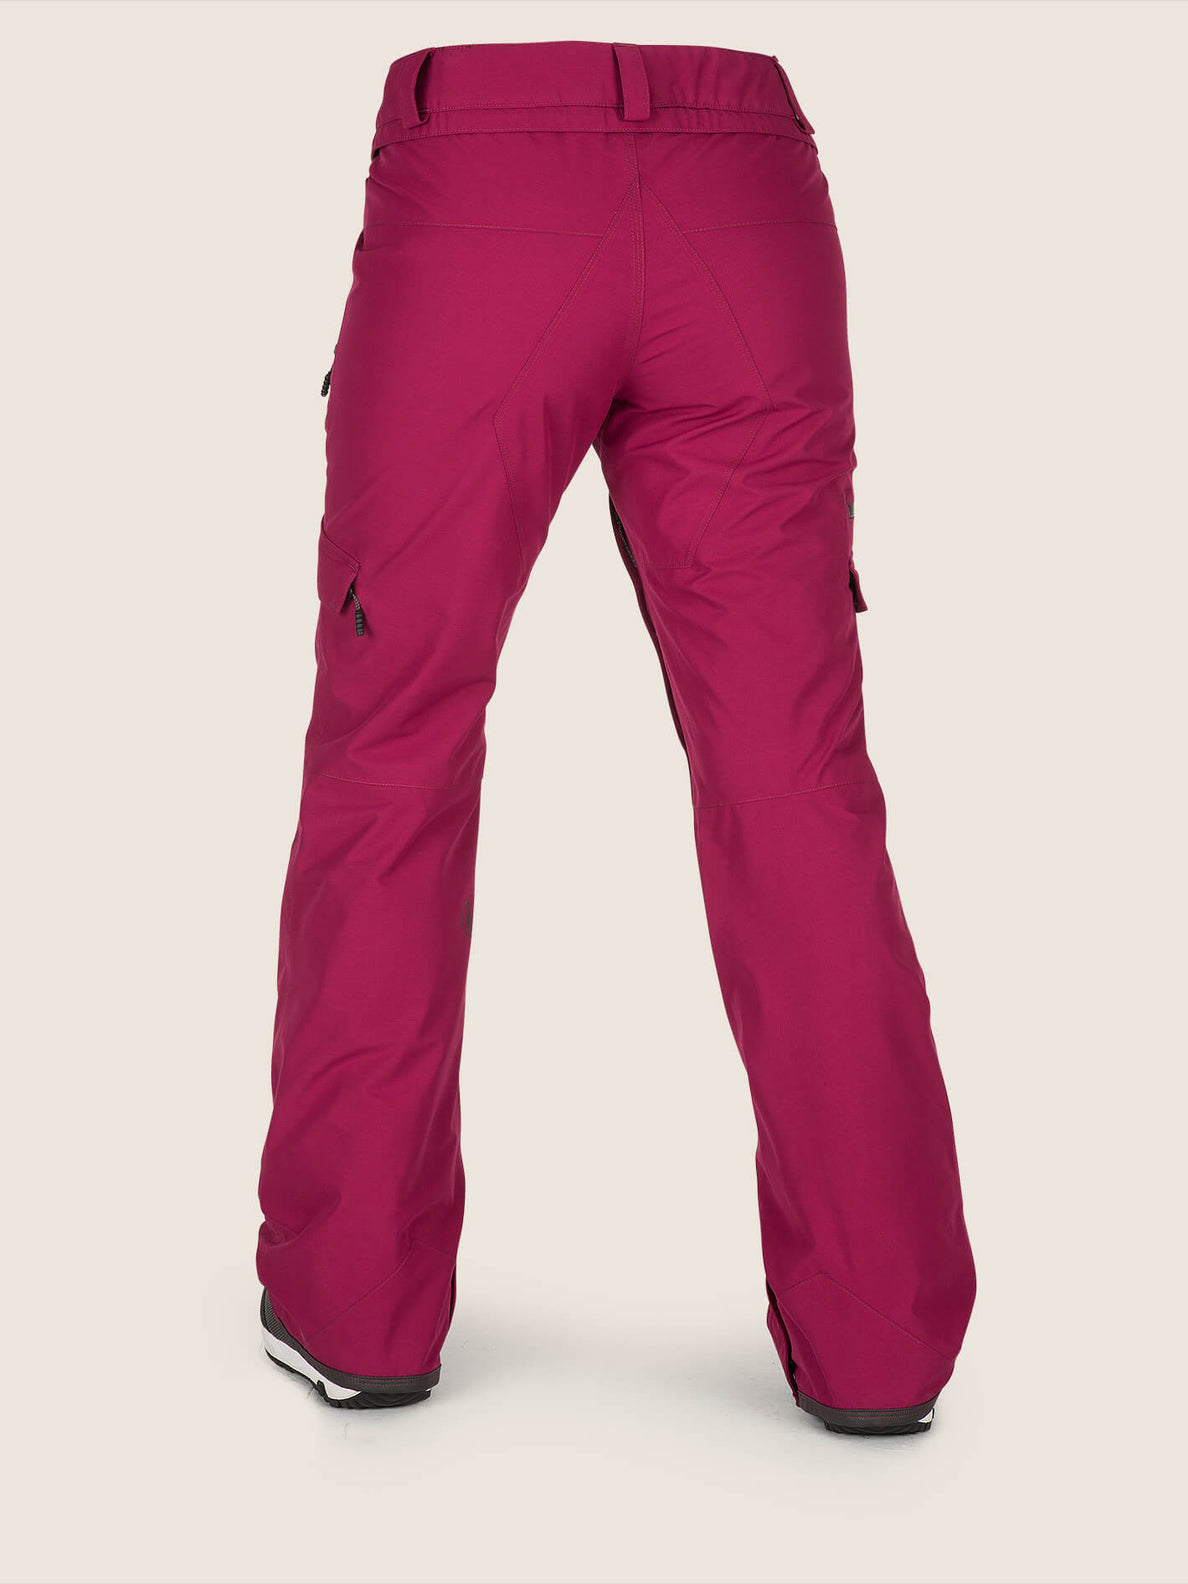 Aston Gore-tex Pant In Magenta, Back View